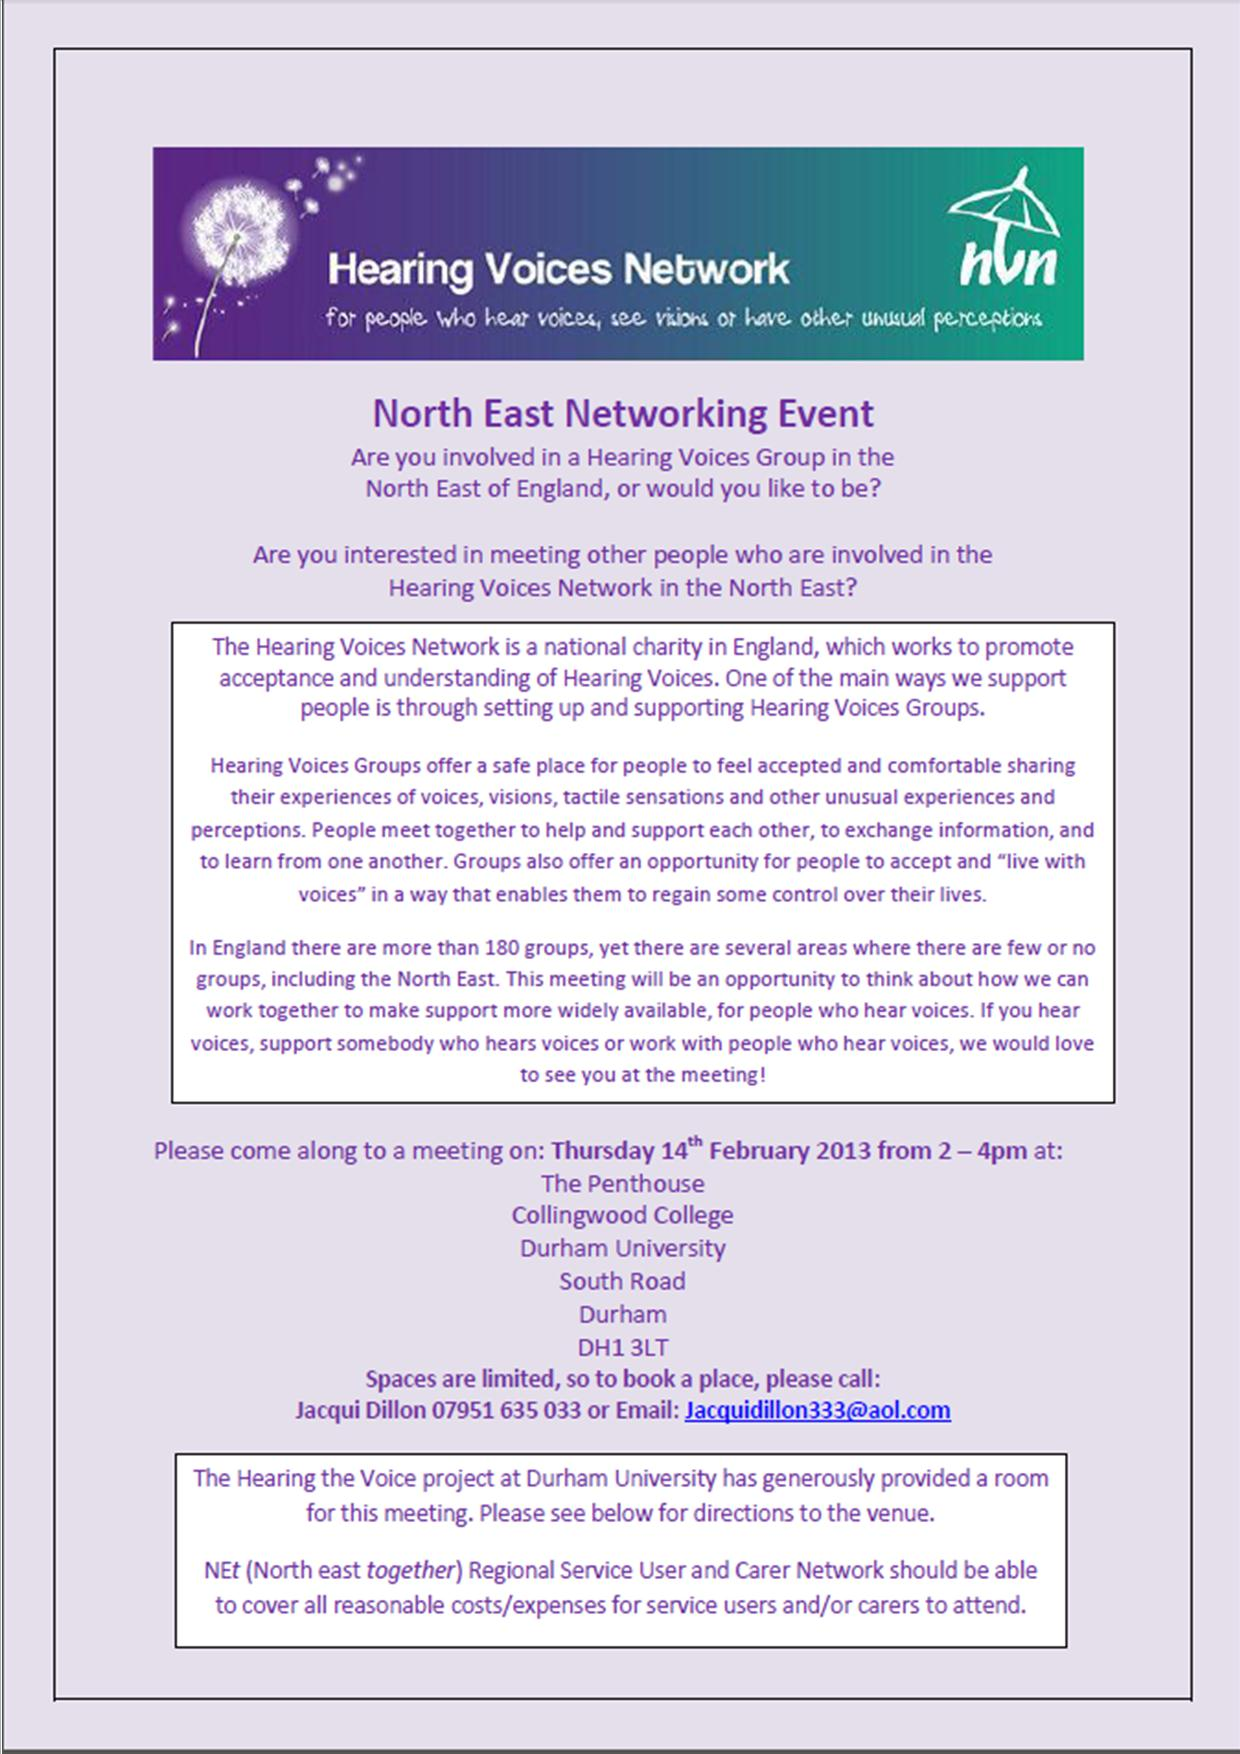 HVN North East Networking Event flyer image